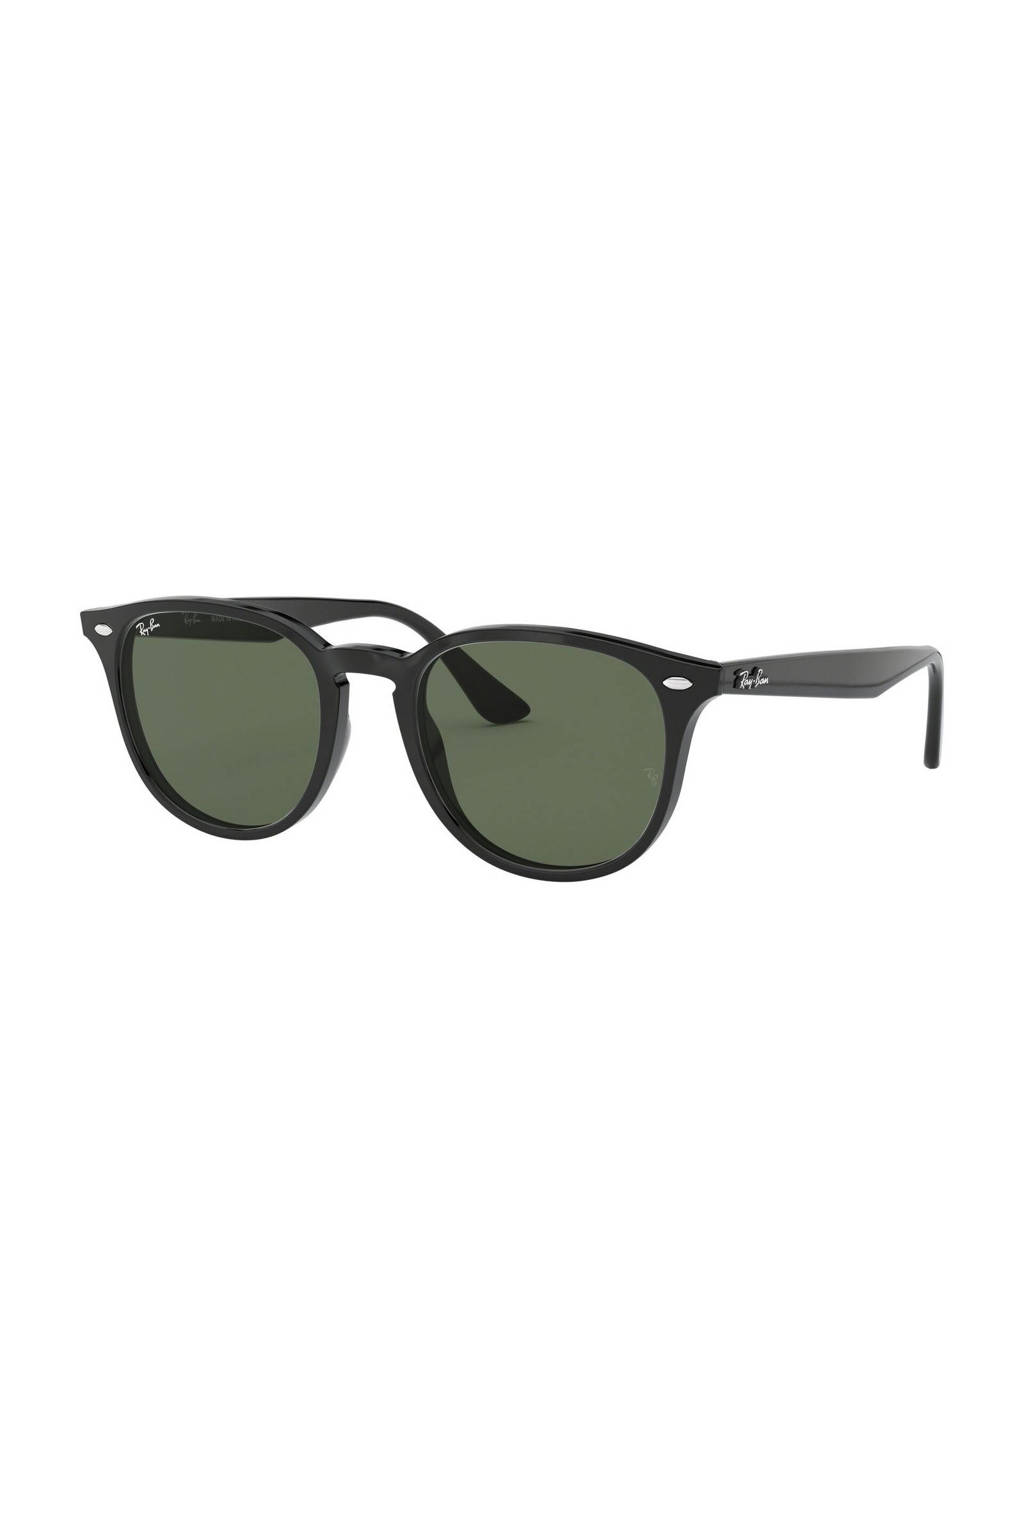 Ray-Ban zonnebril 0RB4259, Groen